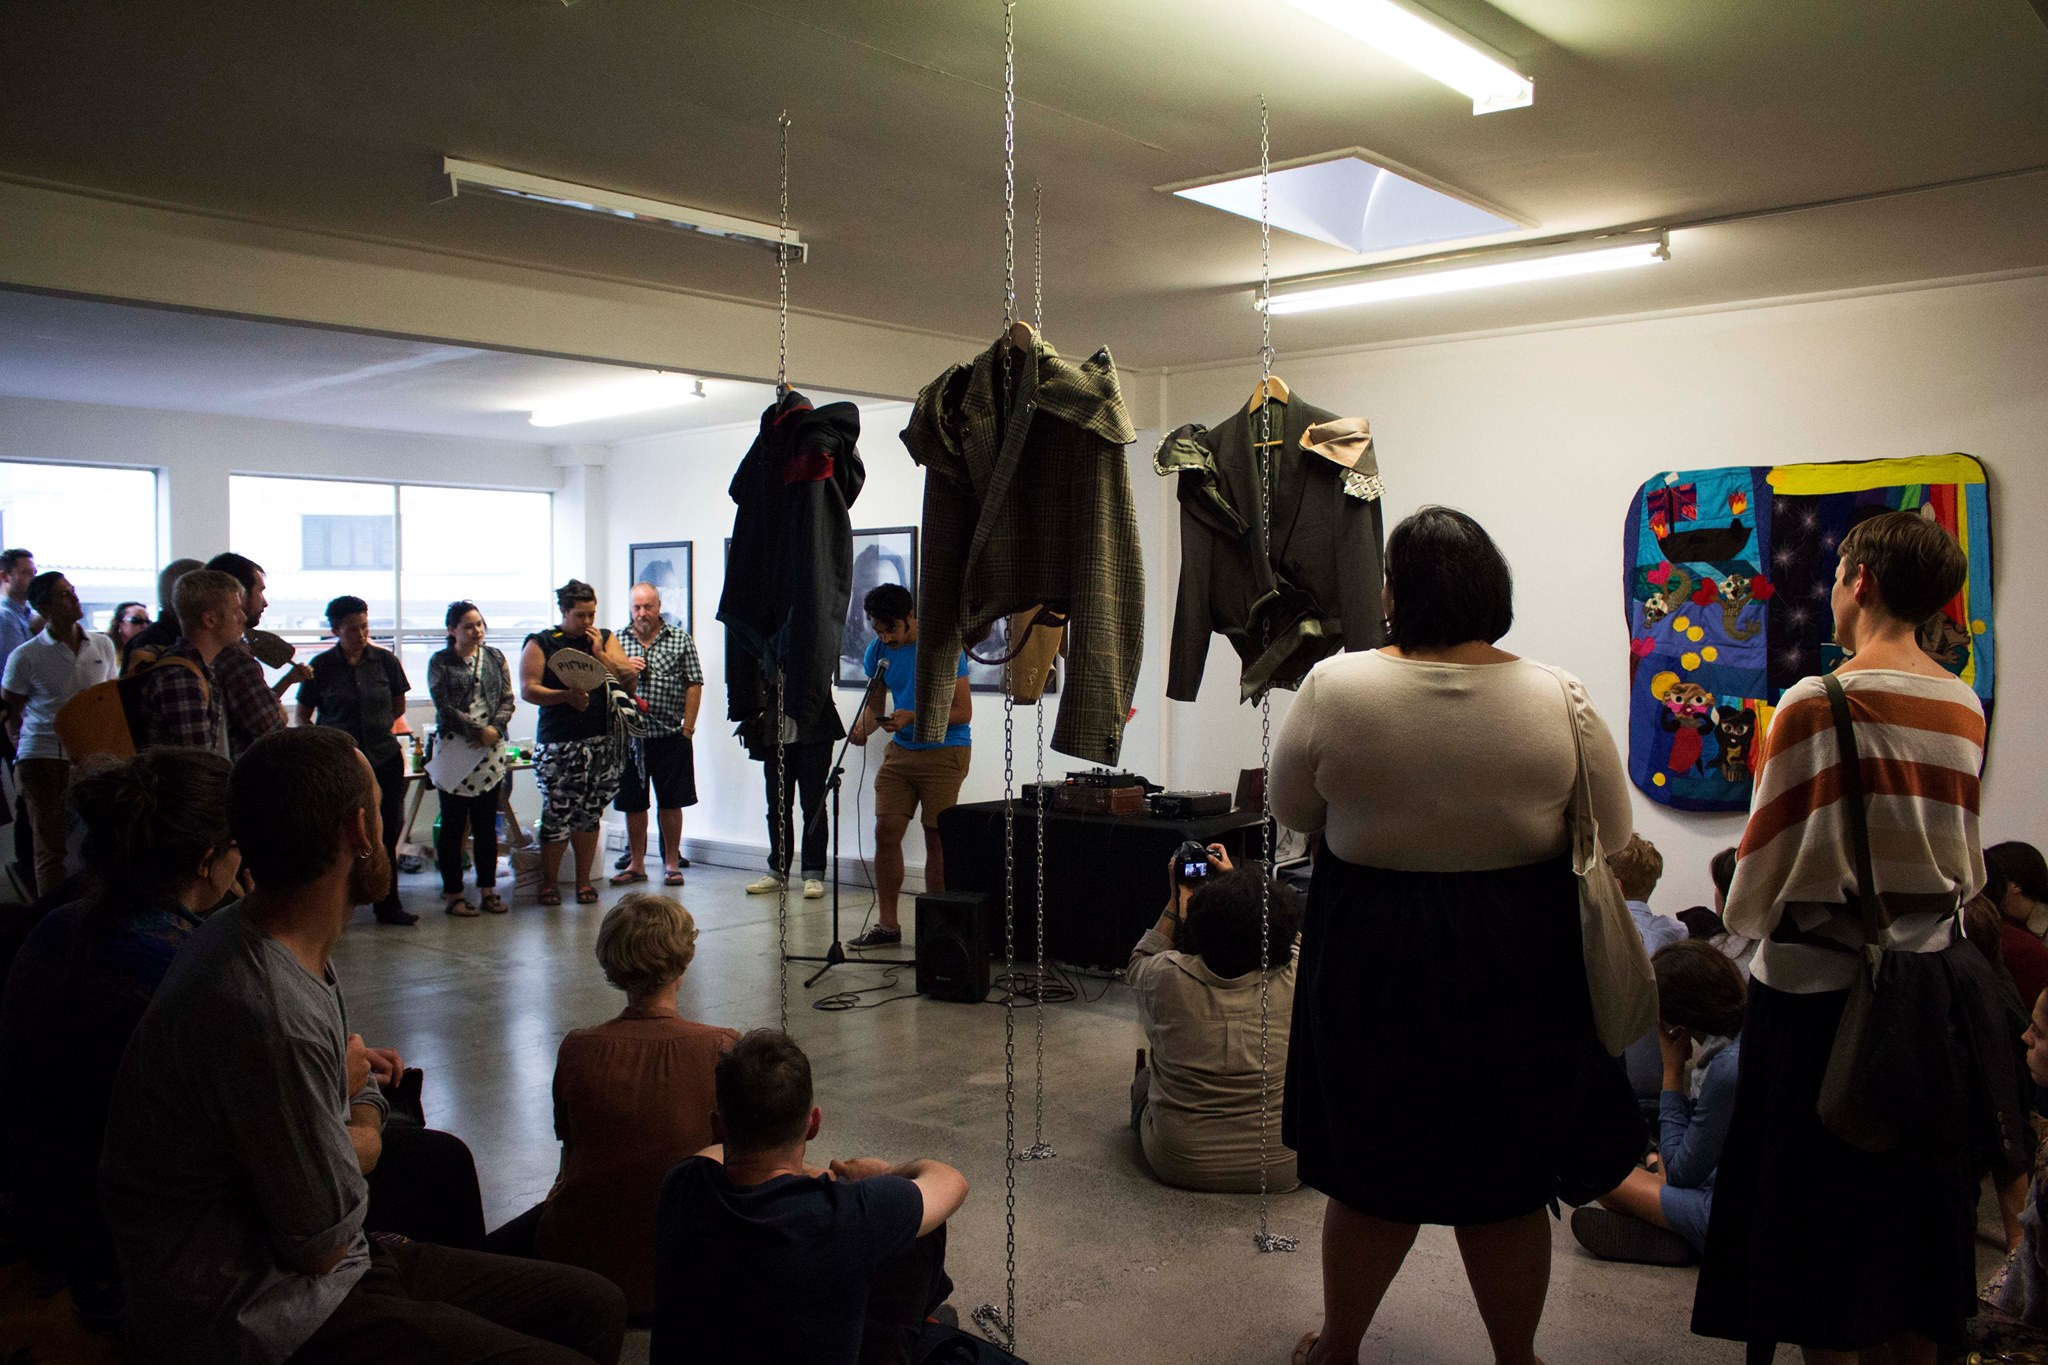 Leuli Eshraghi speaking at Queer Resistance at RM Gallery, 2015. Image courtesy Tautai Contemporary Arts Trust.